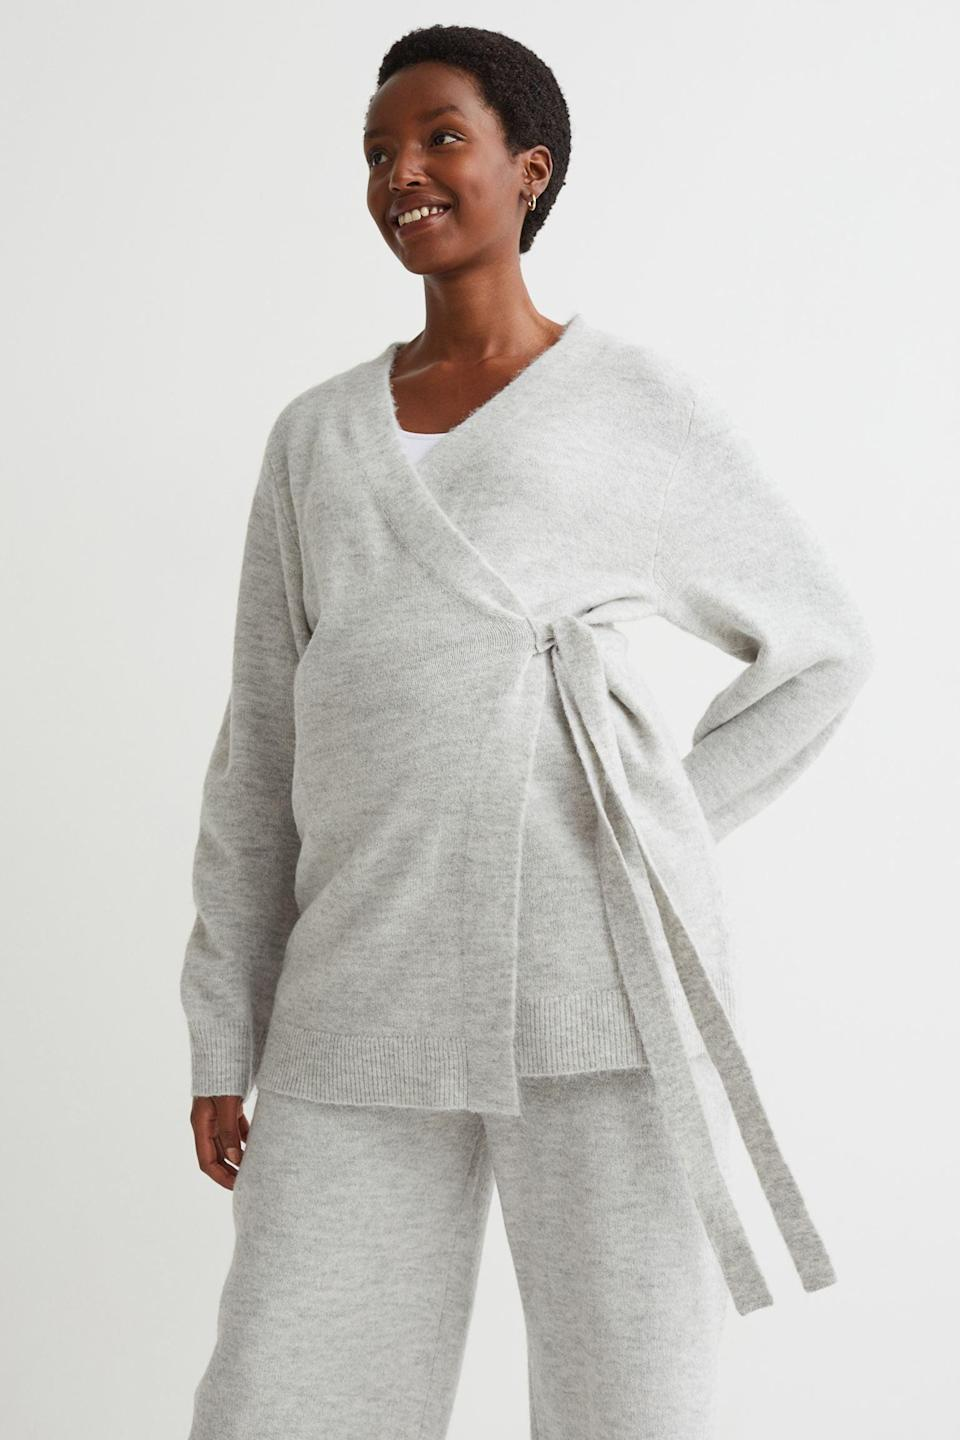 <p>They won't want to take this <span>MAMA Wrap-front Cardigan</span> ($35), and why would they? It's comfy, roomy, and it looks put-together for lounging at home or going out.</p>